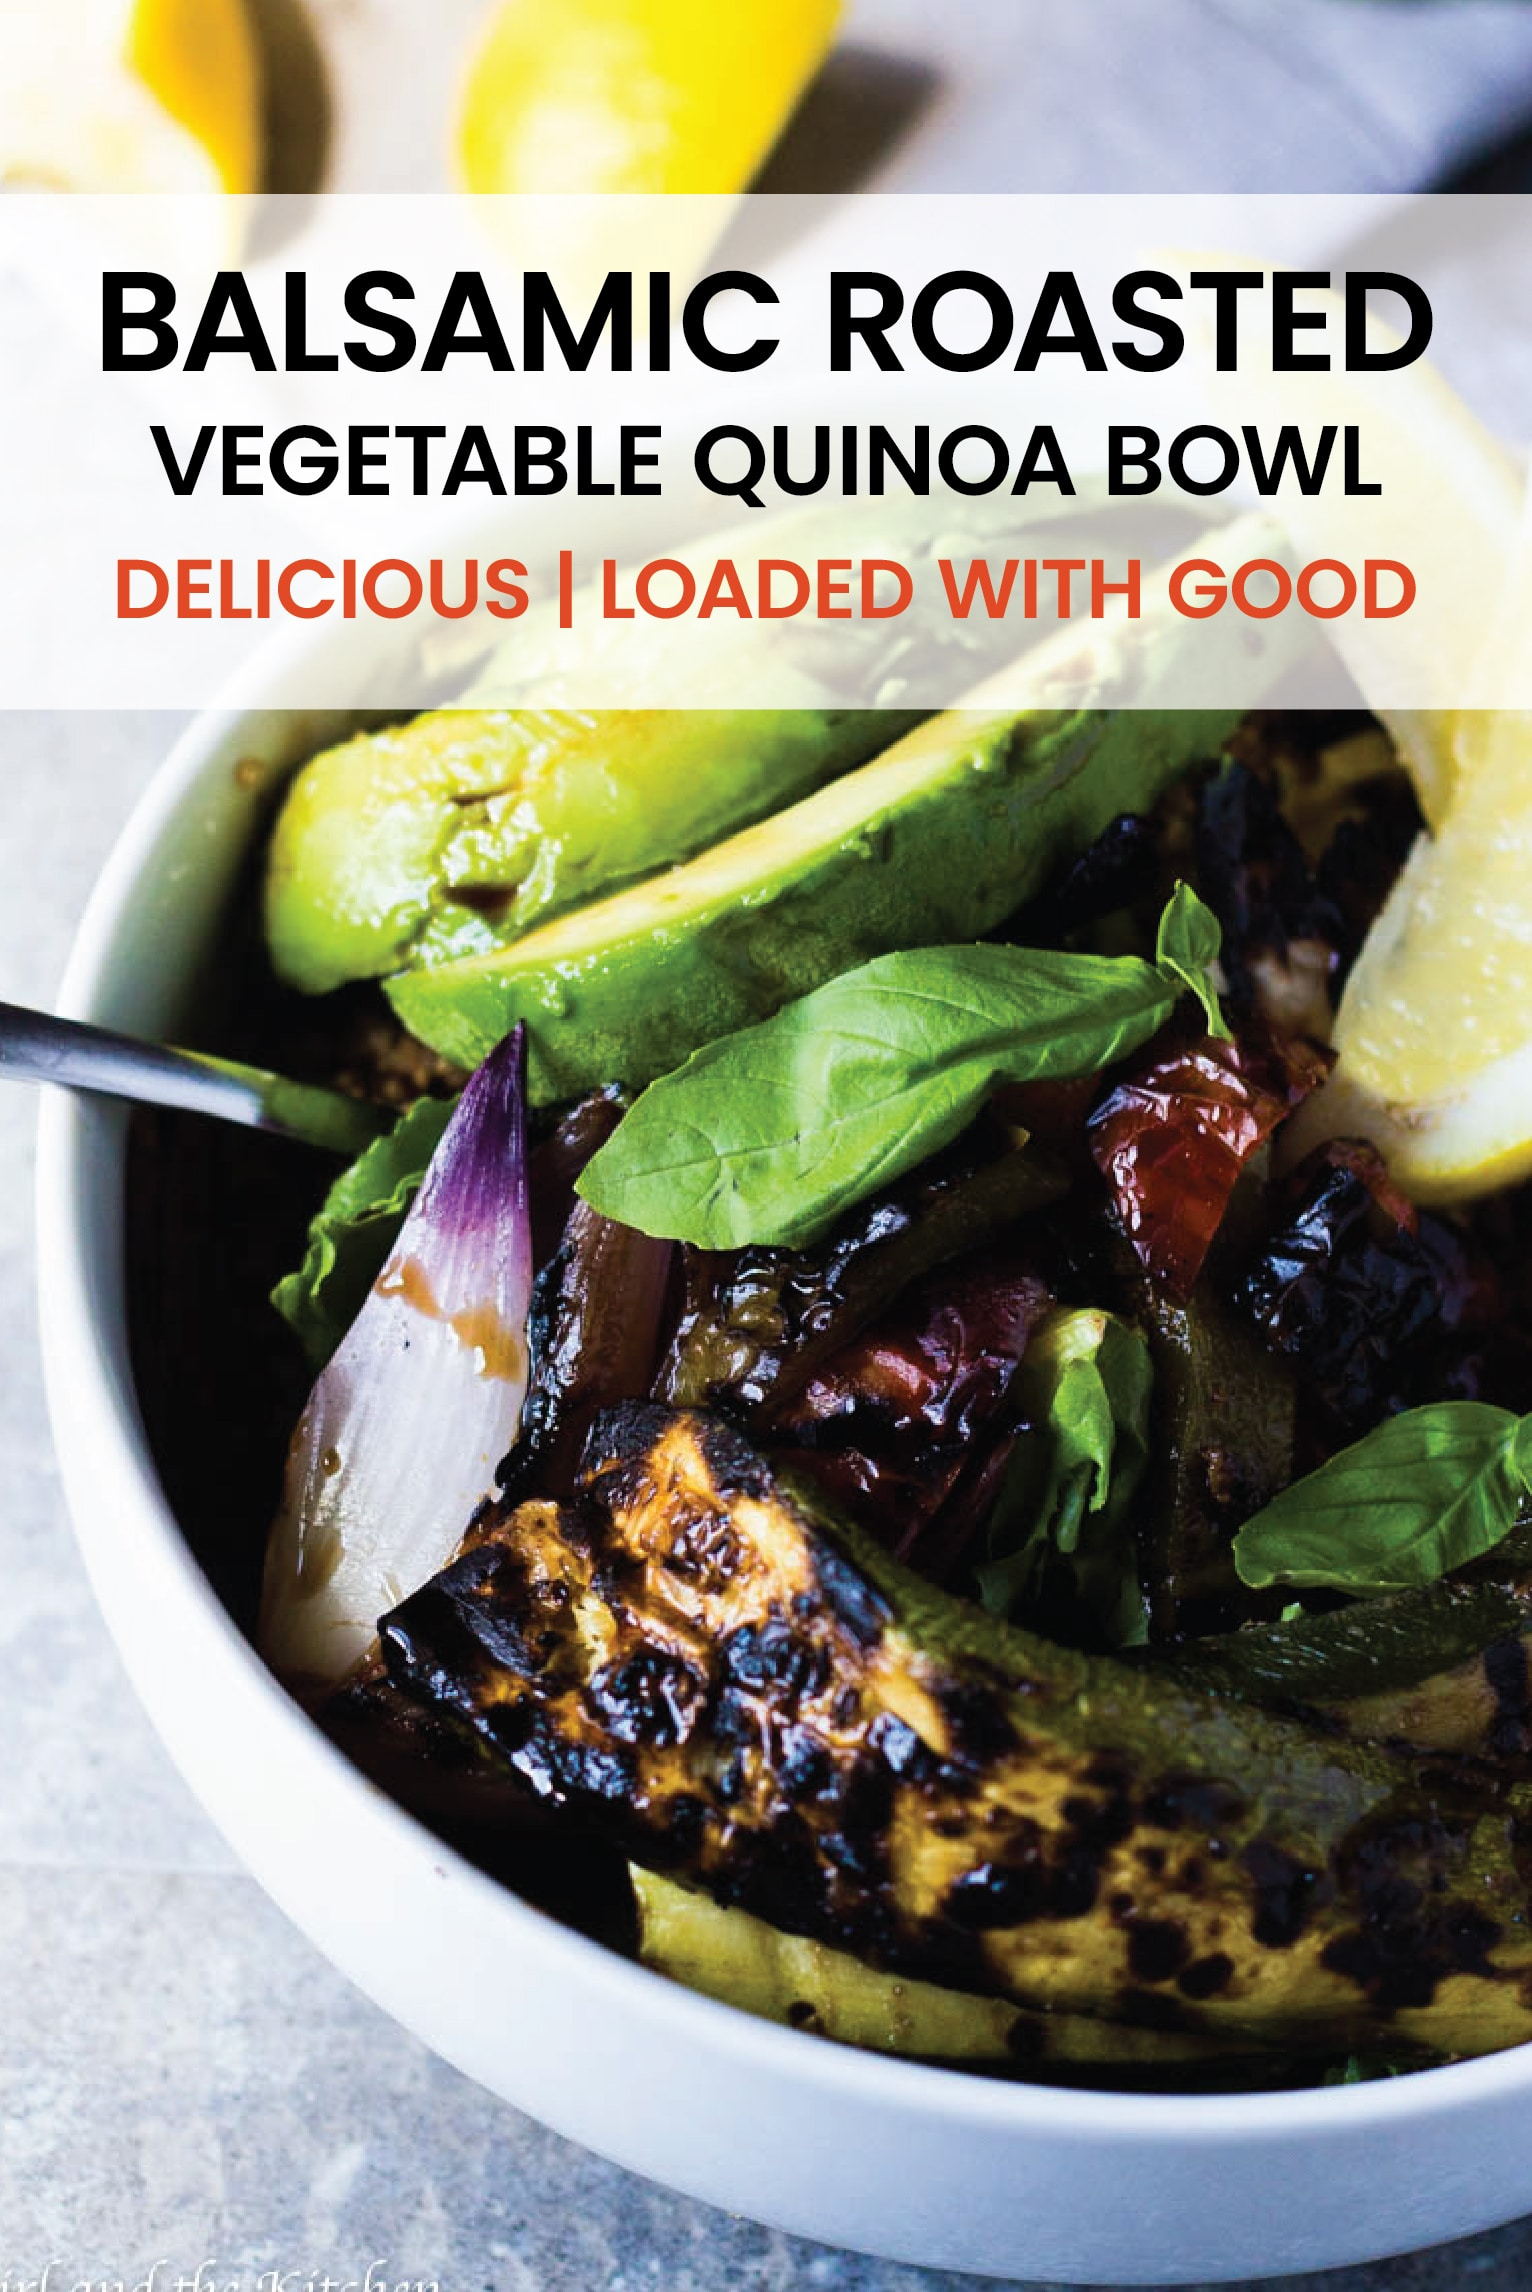 This super healthy Balsamic Roasted Vegetable Quinoa Bowl is loaded with good for you veggies, wholesome meal. #wholesome #tasty